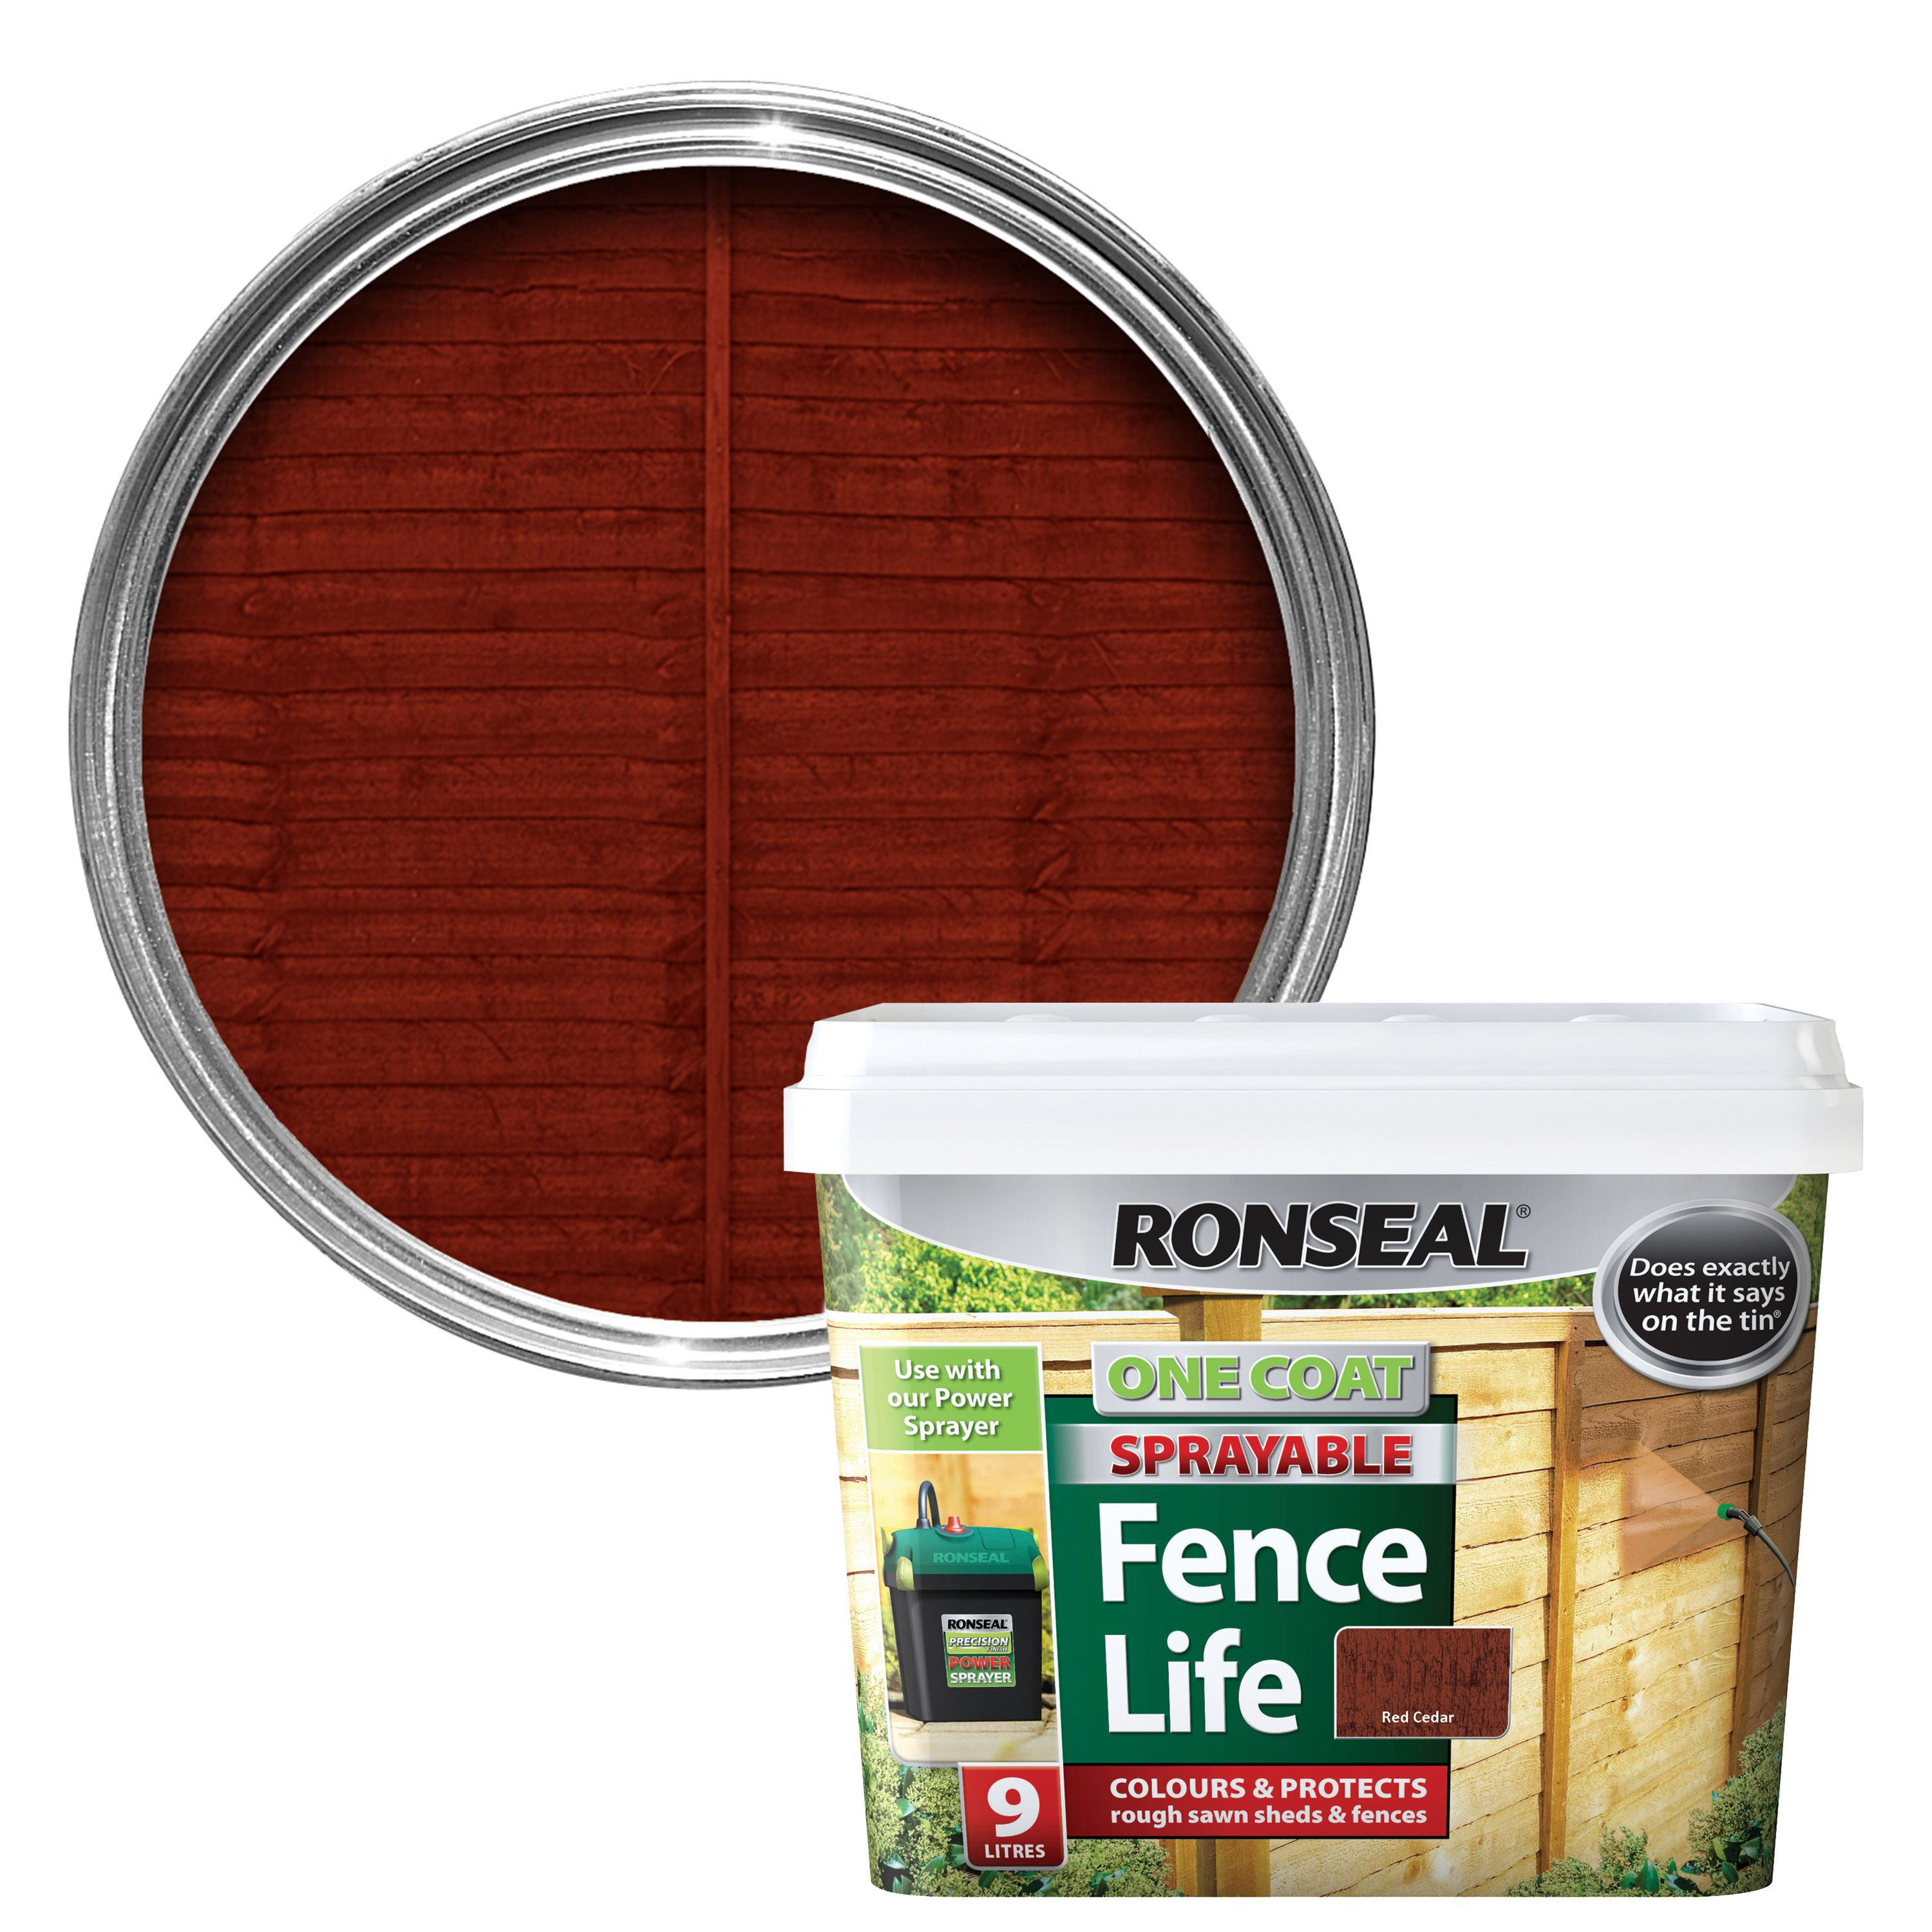 Ronseal chalky furniture paint ronseal - Ronseal Red Cedar Matt Shed Fence Stain 9l Departments Diy At B Q